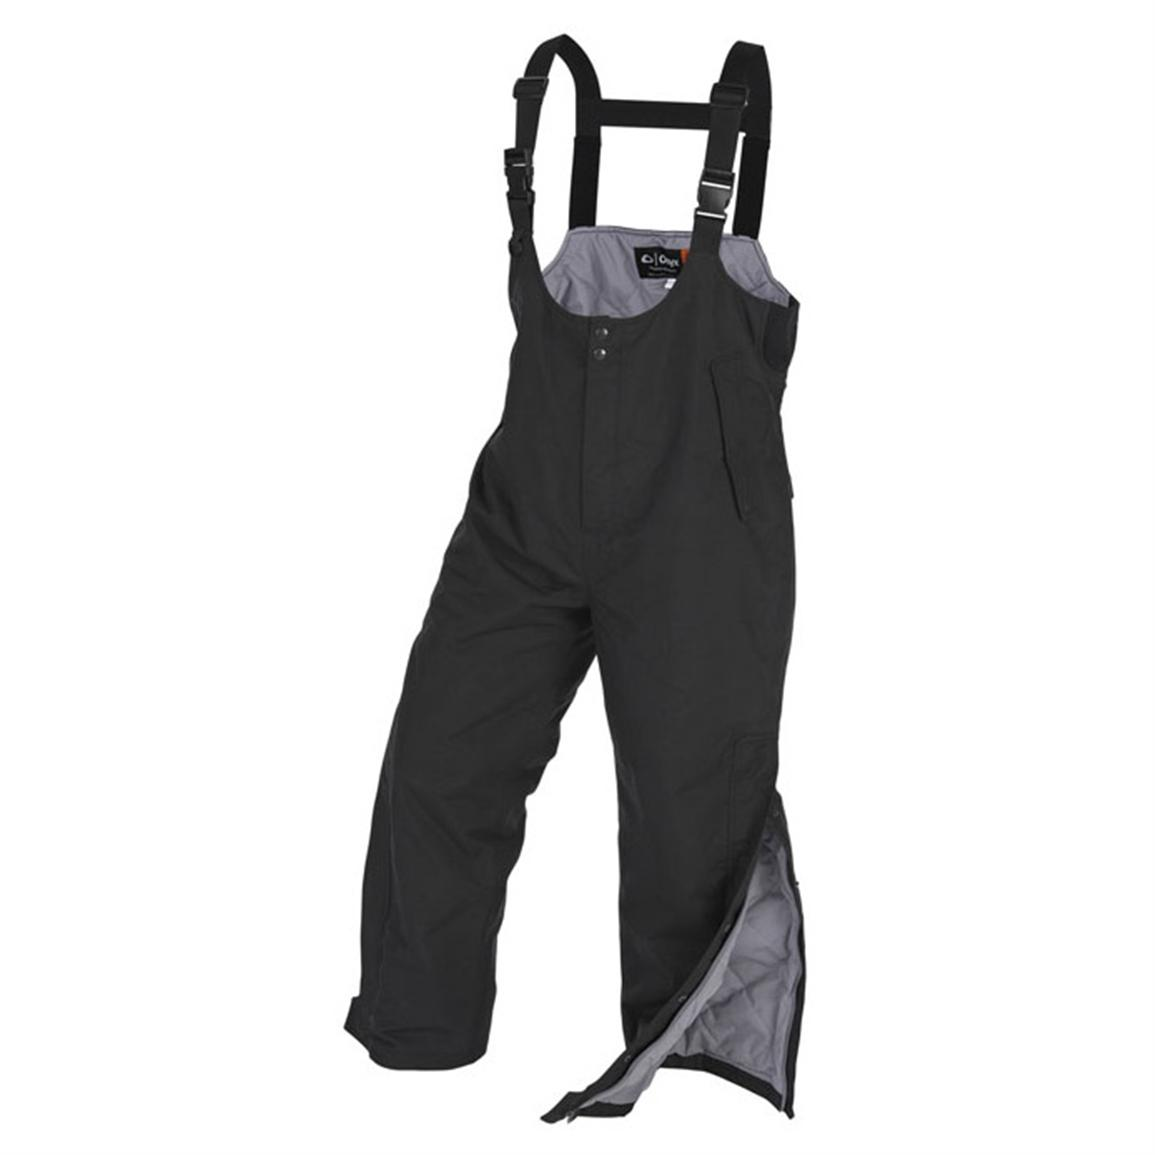 Onyx ArcticShield® Cold Weather Waterproof Bib Overalls, Black